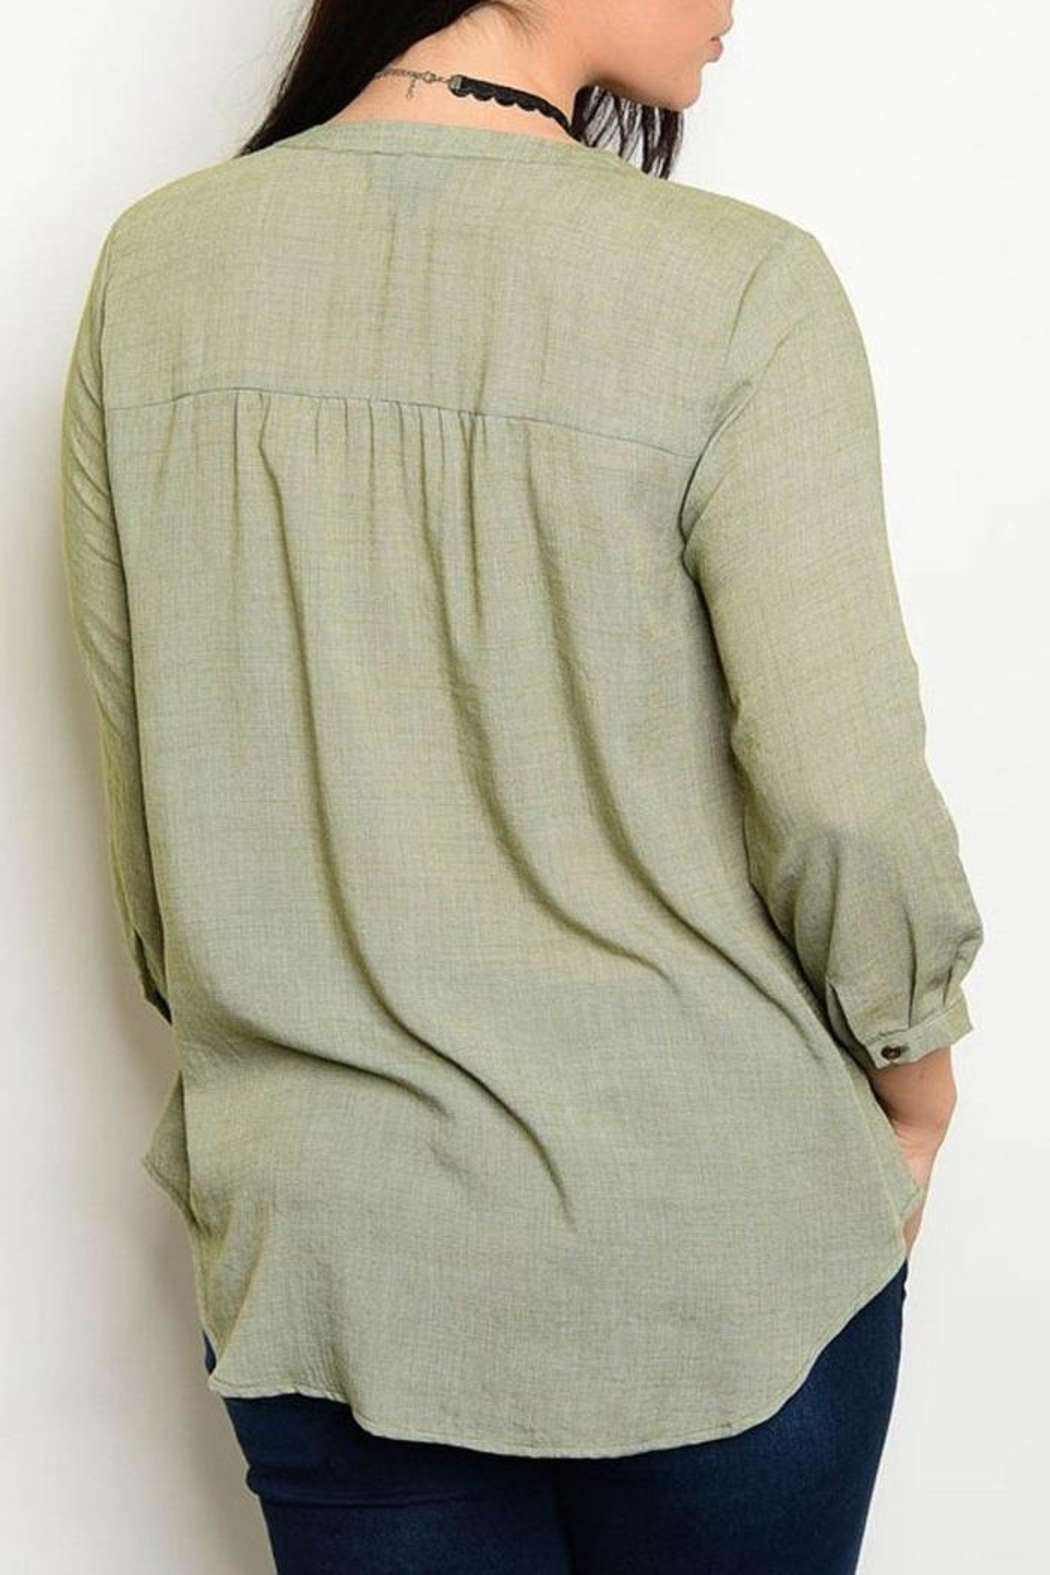 Blu Pepper Sage Lace Blouse - Front Full Image